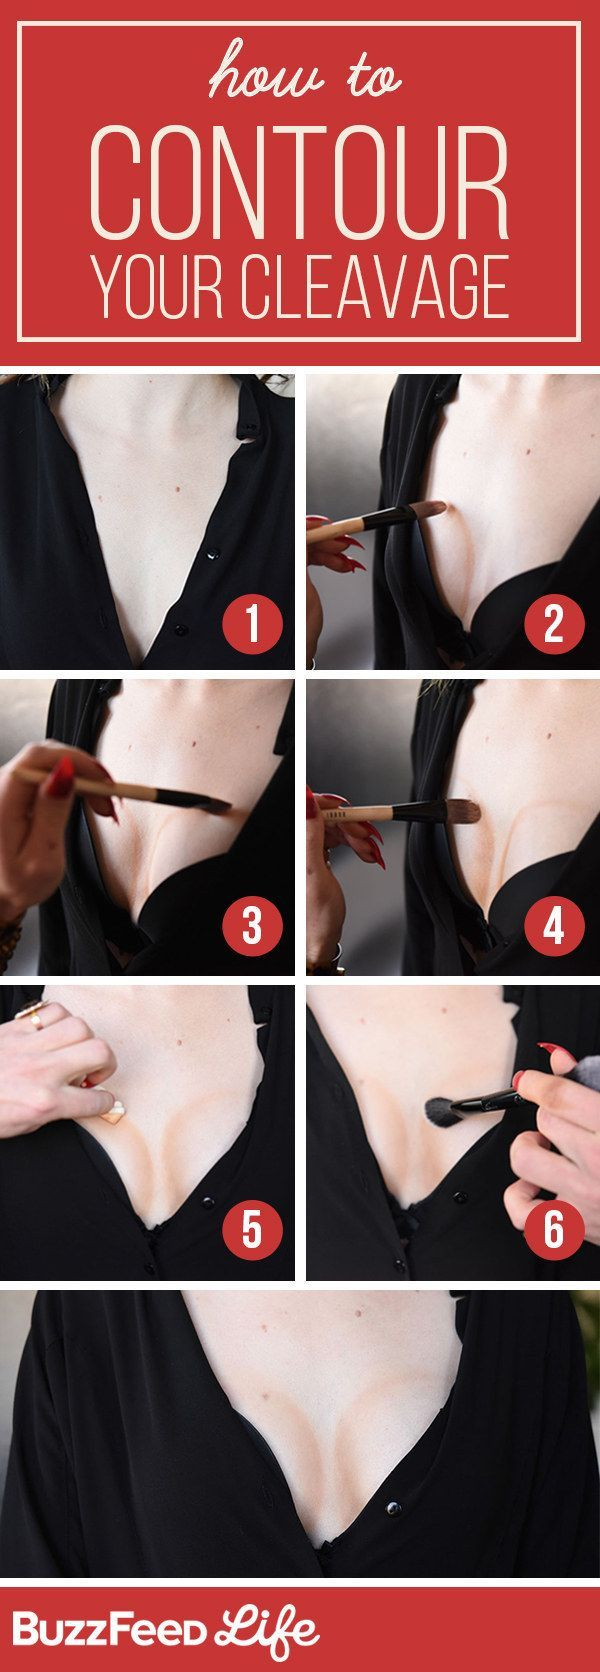 Makeup Miracles: How To Make Any Boobs Look Bigger...Woah, you can do anything w...